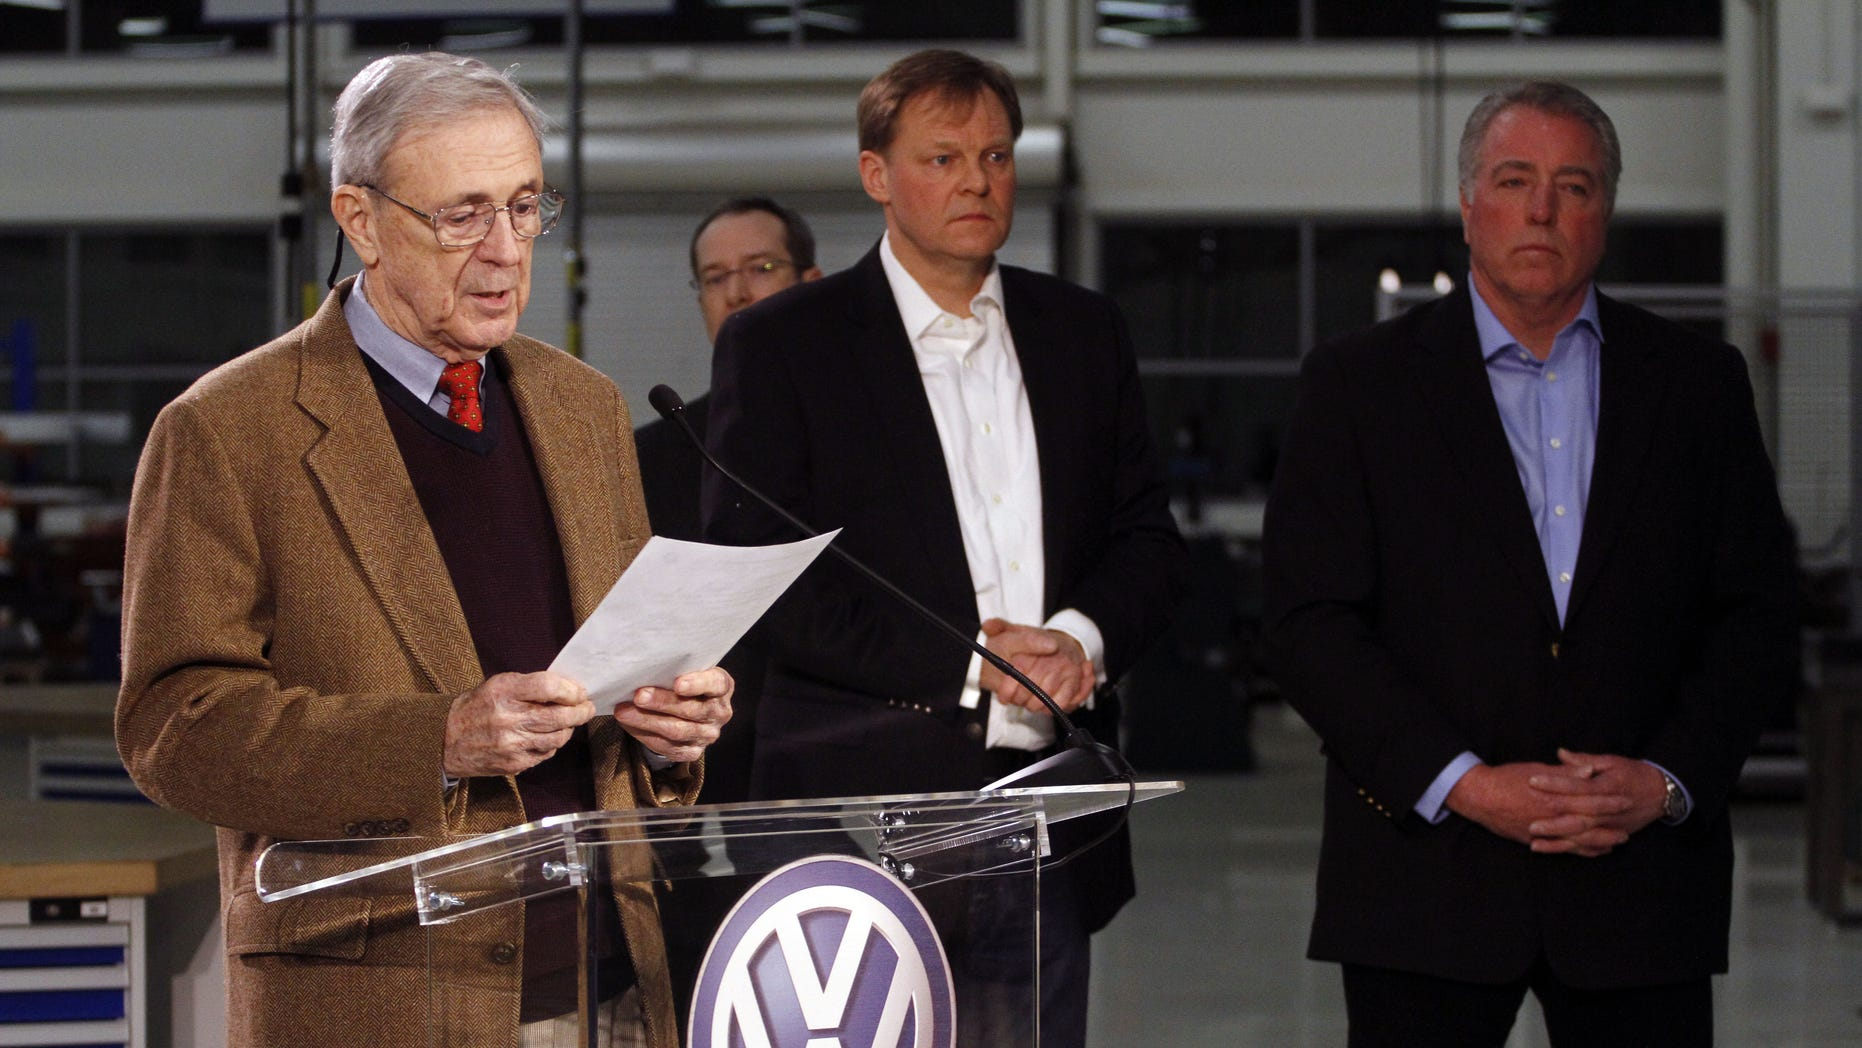 Retired circuit judge Sam Payne, left, announces that Volkswagen employees voted to deny representation by the United Auto Workers union as Frank Fischer, Chairman and CEO of the Volkswagen Group of America, center, and Gary Casteel, UAW Region 8 Director, look on from behind, concluding a three day election which ended this evening Friday, Feb. 14, 2014, in Chattanooga, Tenn. (AP Photo/Chattanooga Times Free Press, Dan Henry) THE DAILY CITIZEN OUT; NOOGA.COM OUT; CLEVELAND DAILY BANNER OUT; LOCAL INTERNET OUT